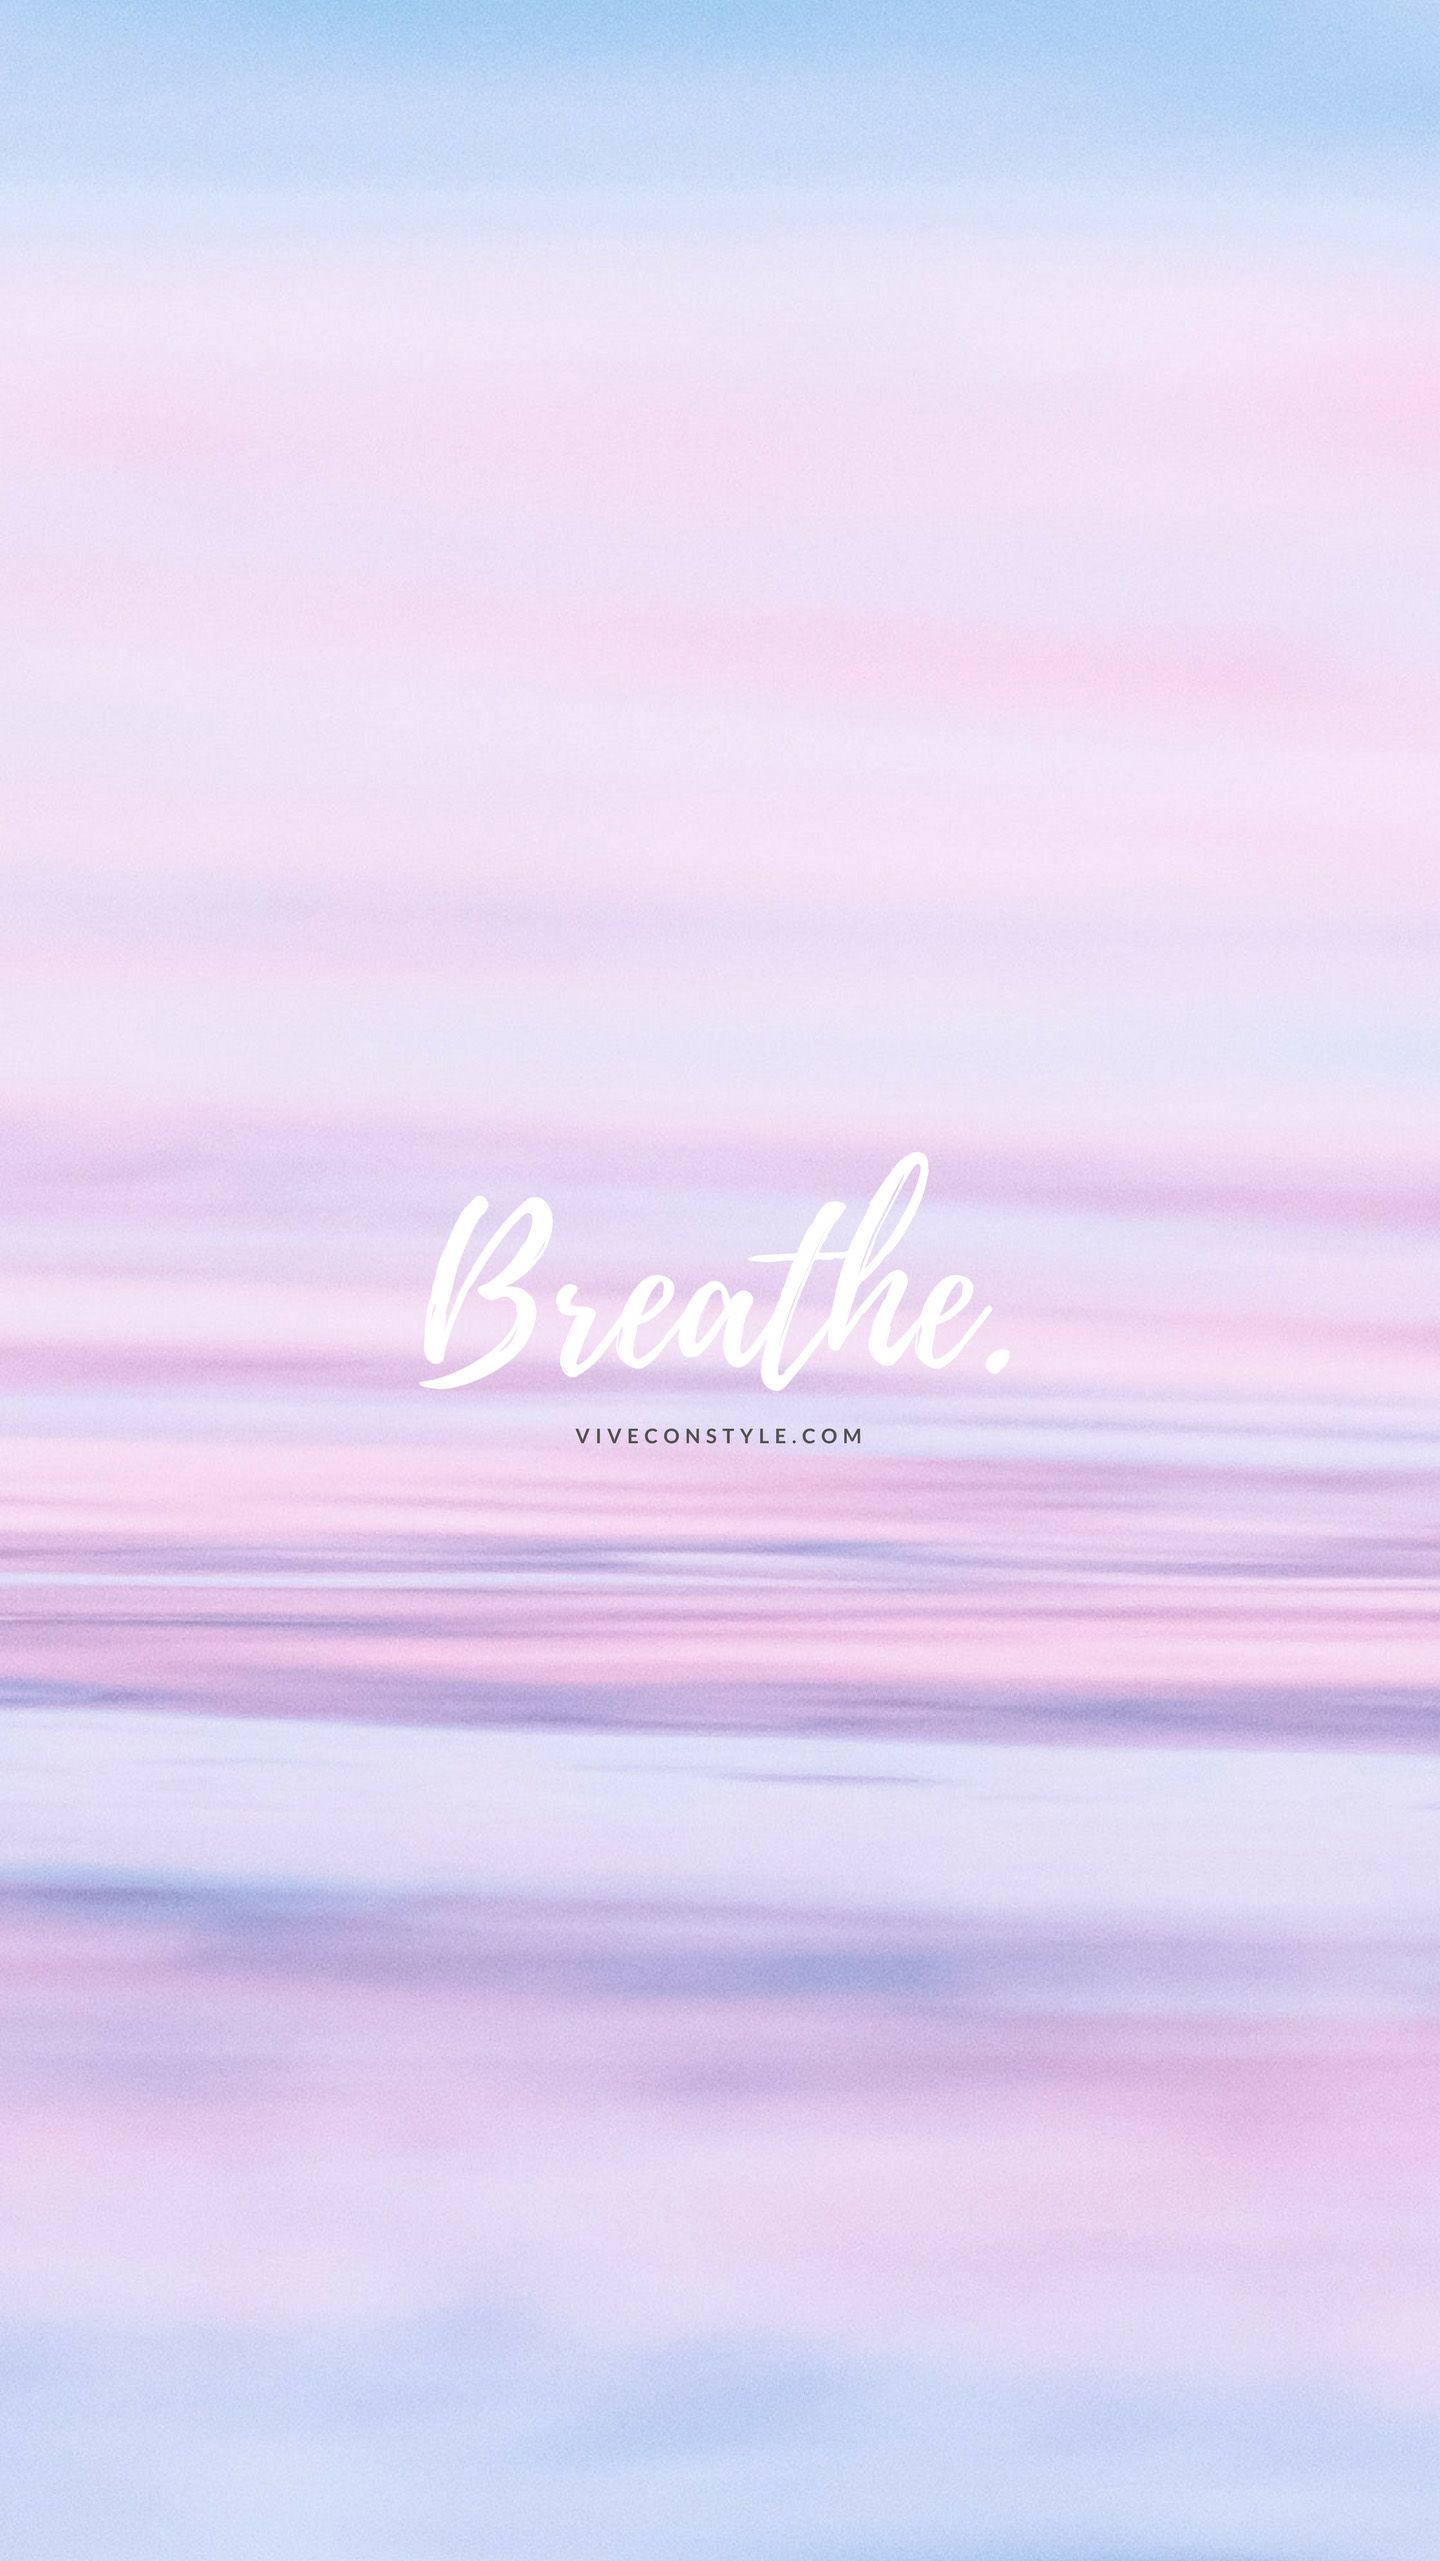 Stay motivated and inspired with this free wallpaper for you to